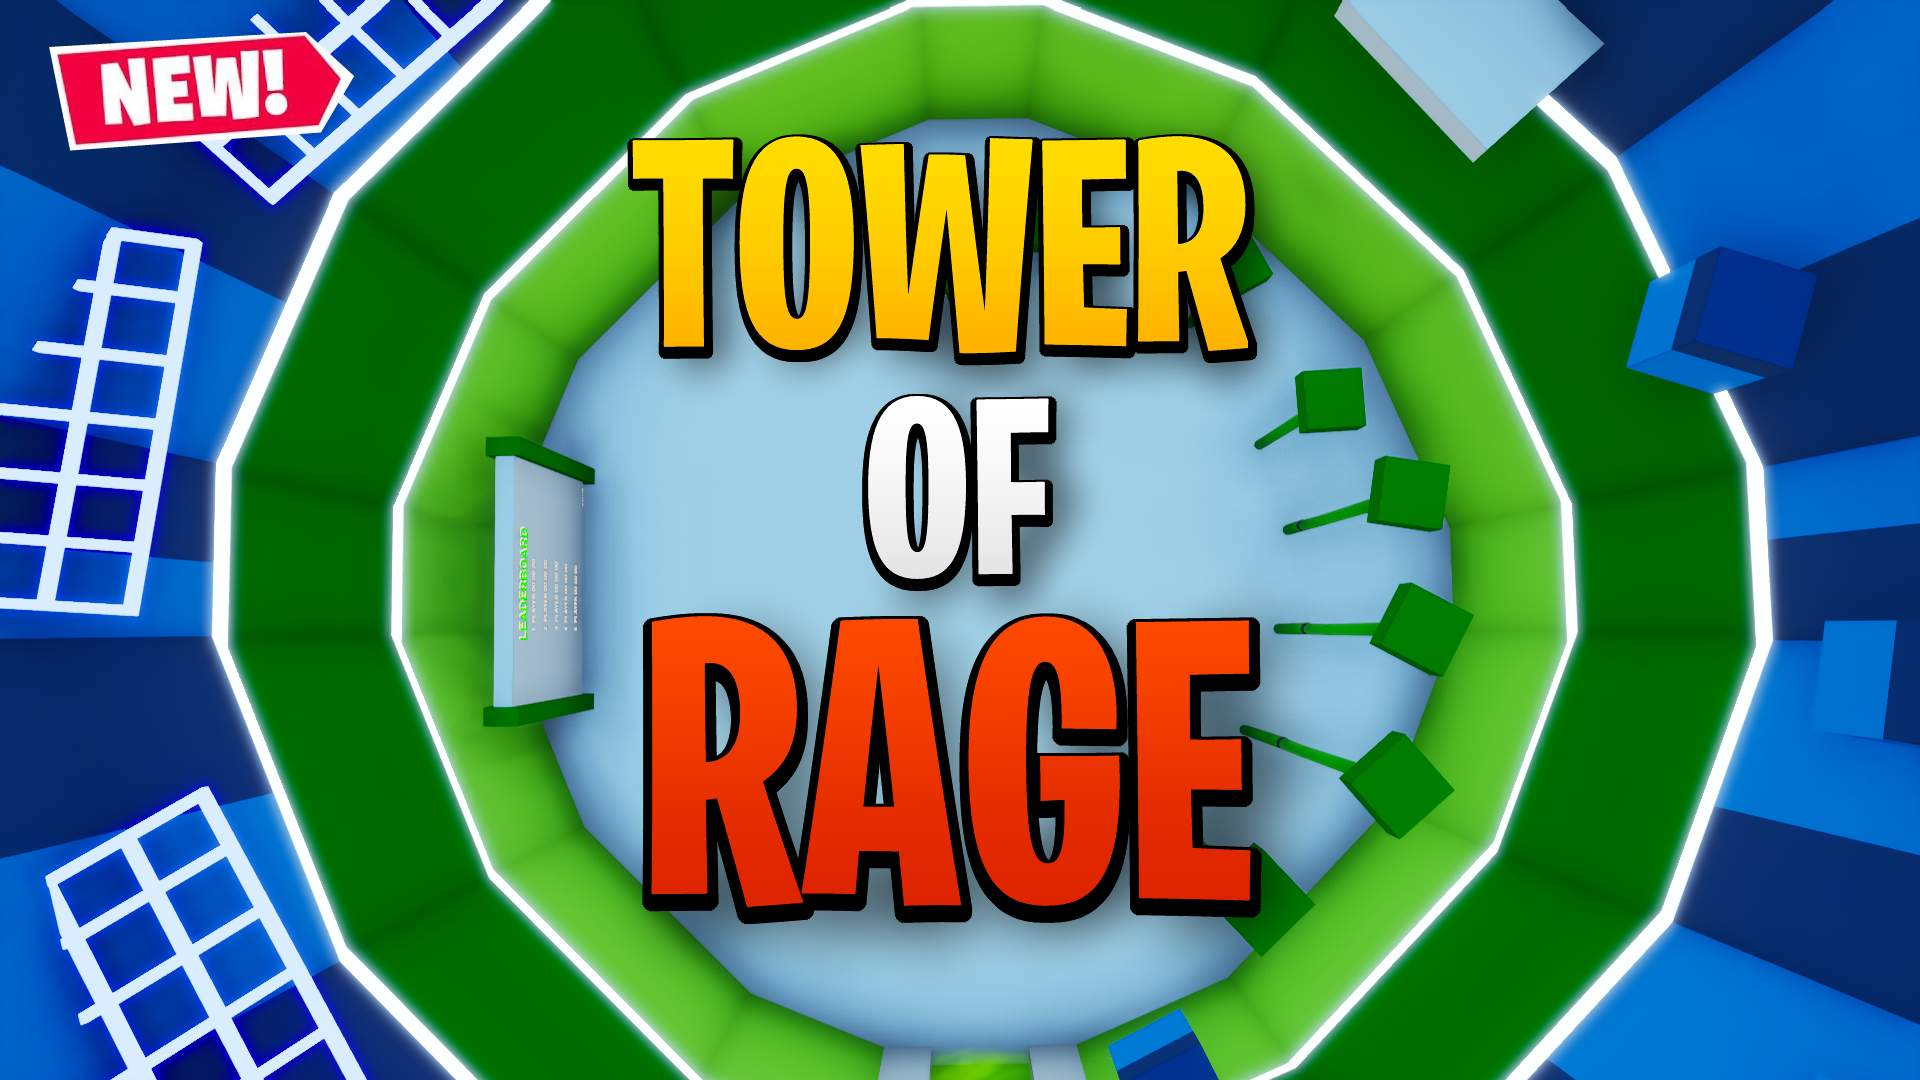 TOWER OF RAGE